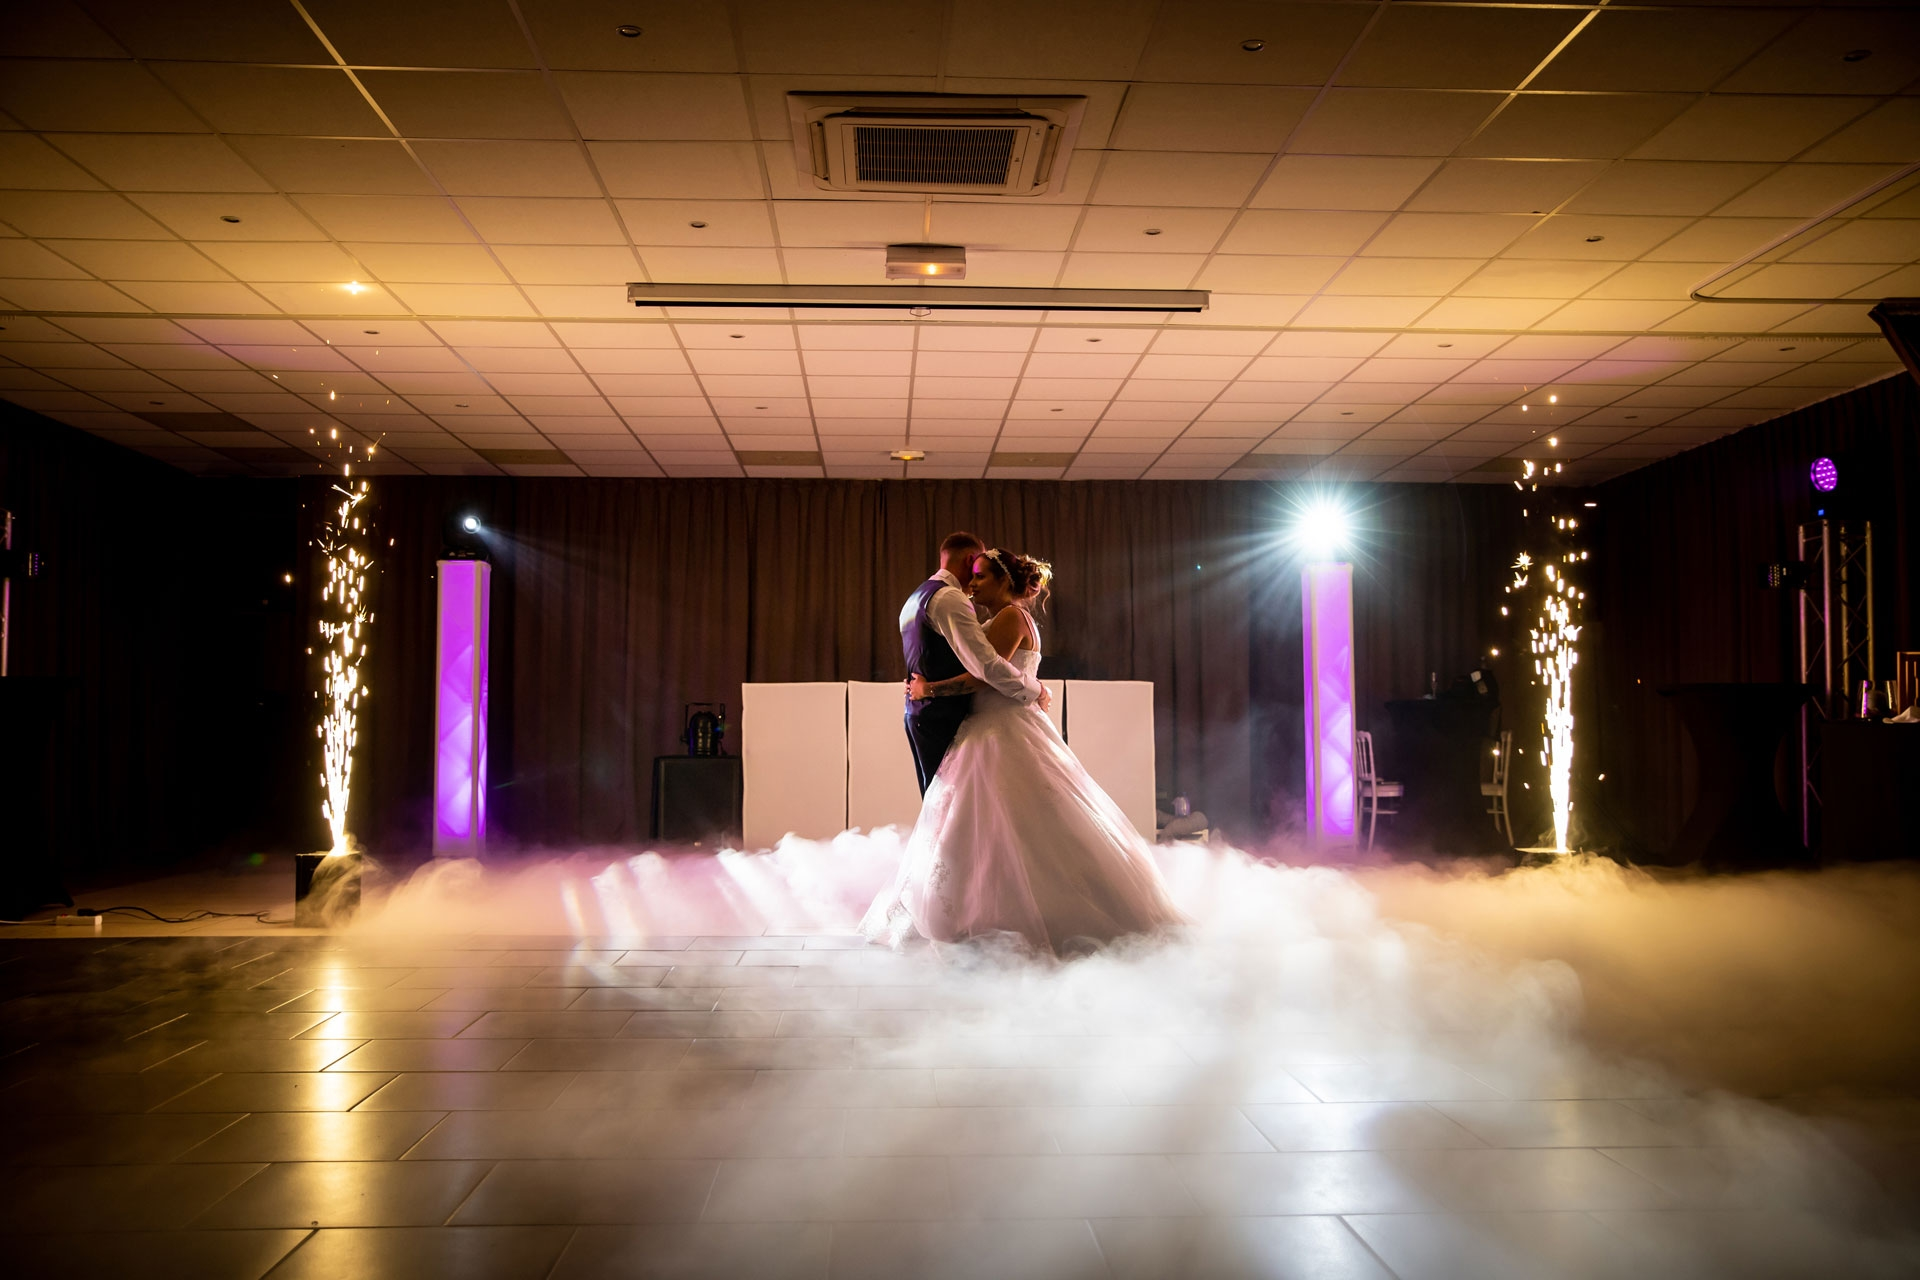 20200912-mariage-ophelie-alexandre-081